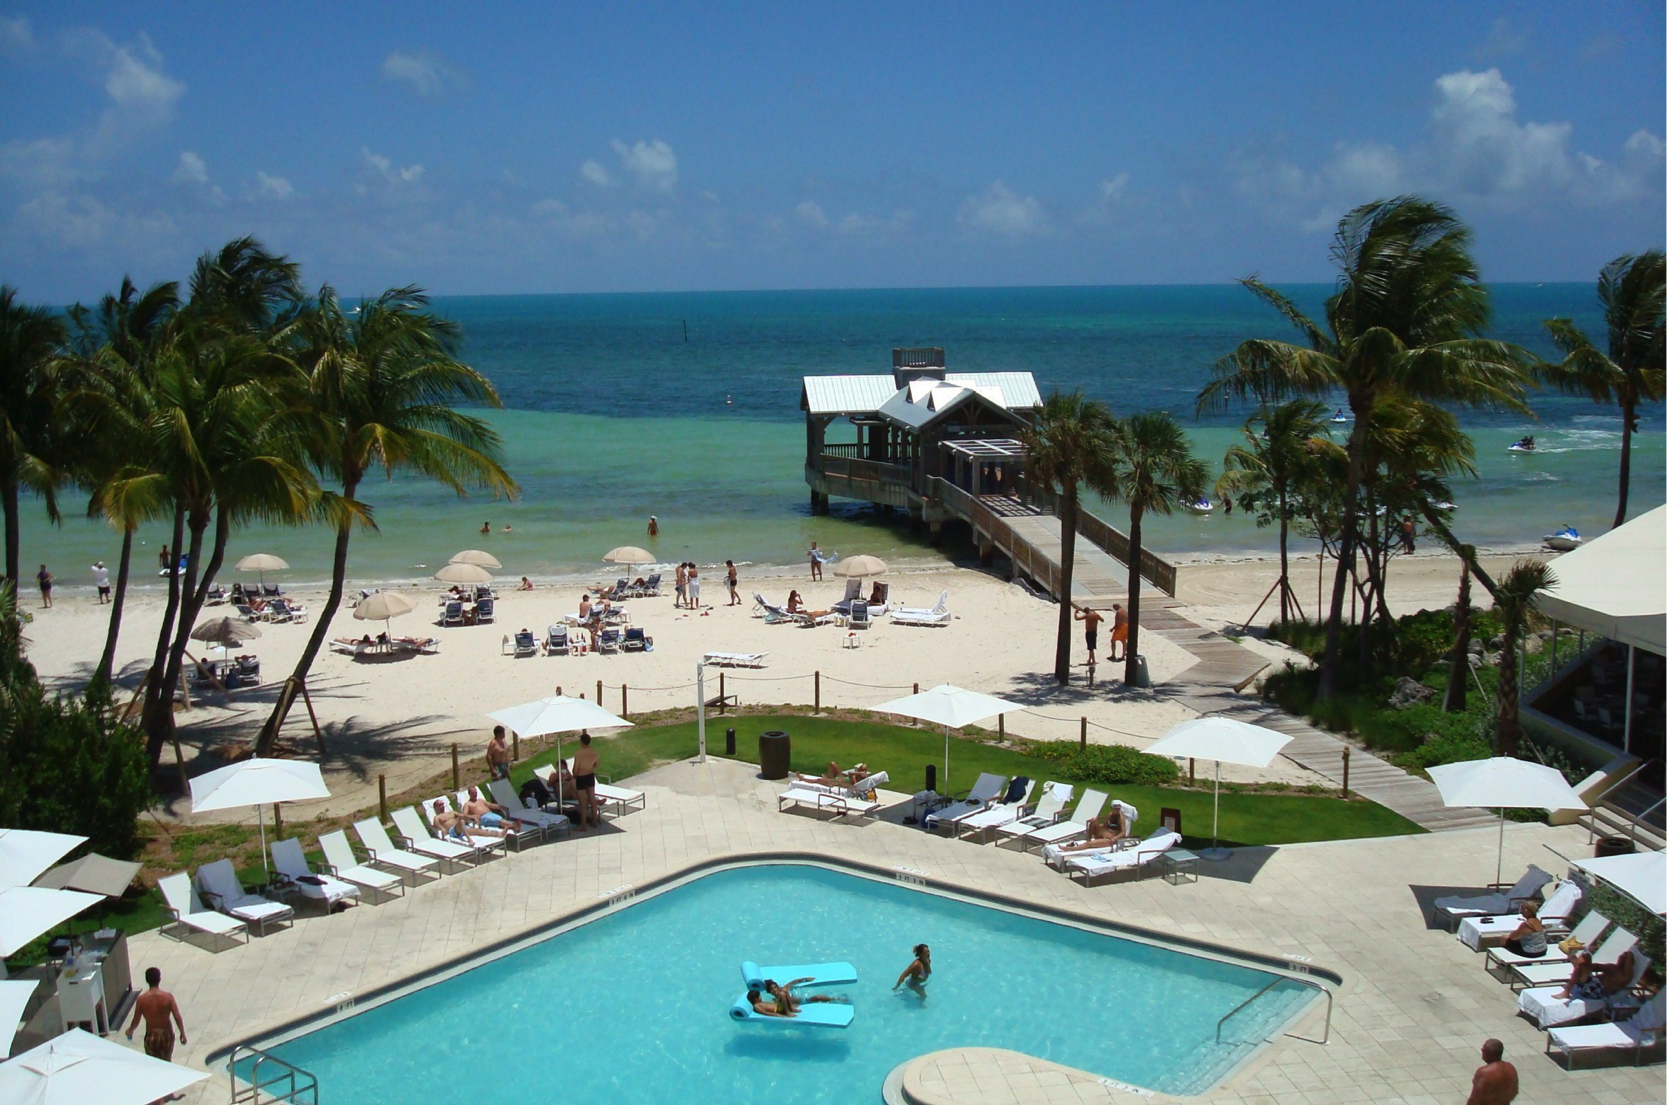 Marriott Beachside Resort - Key West, FL